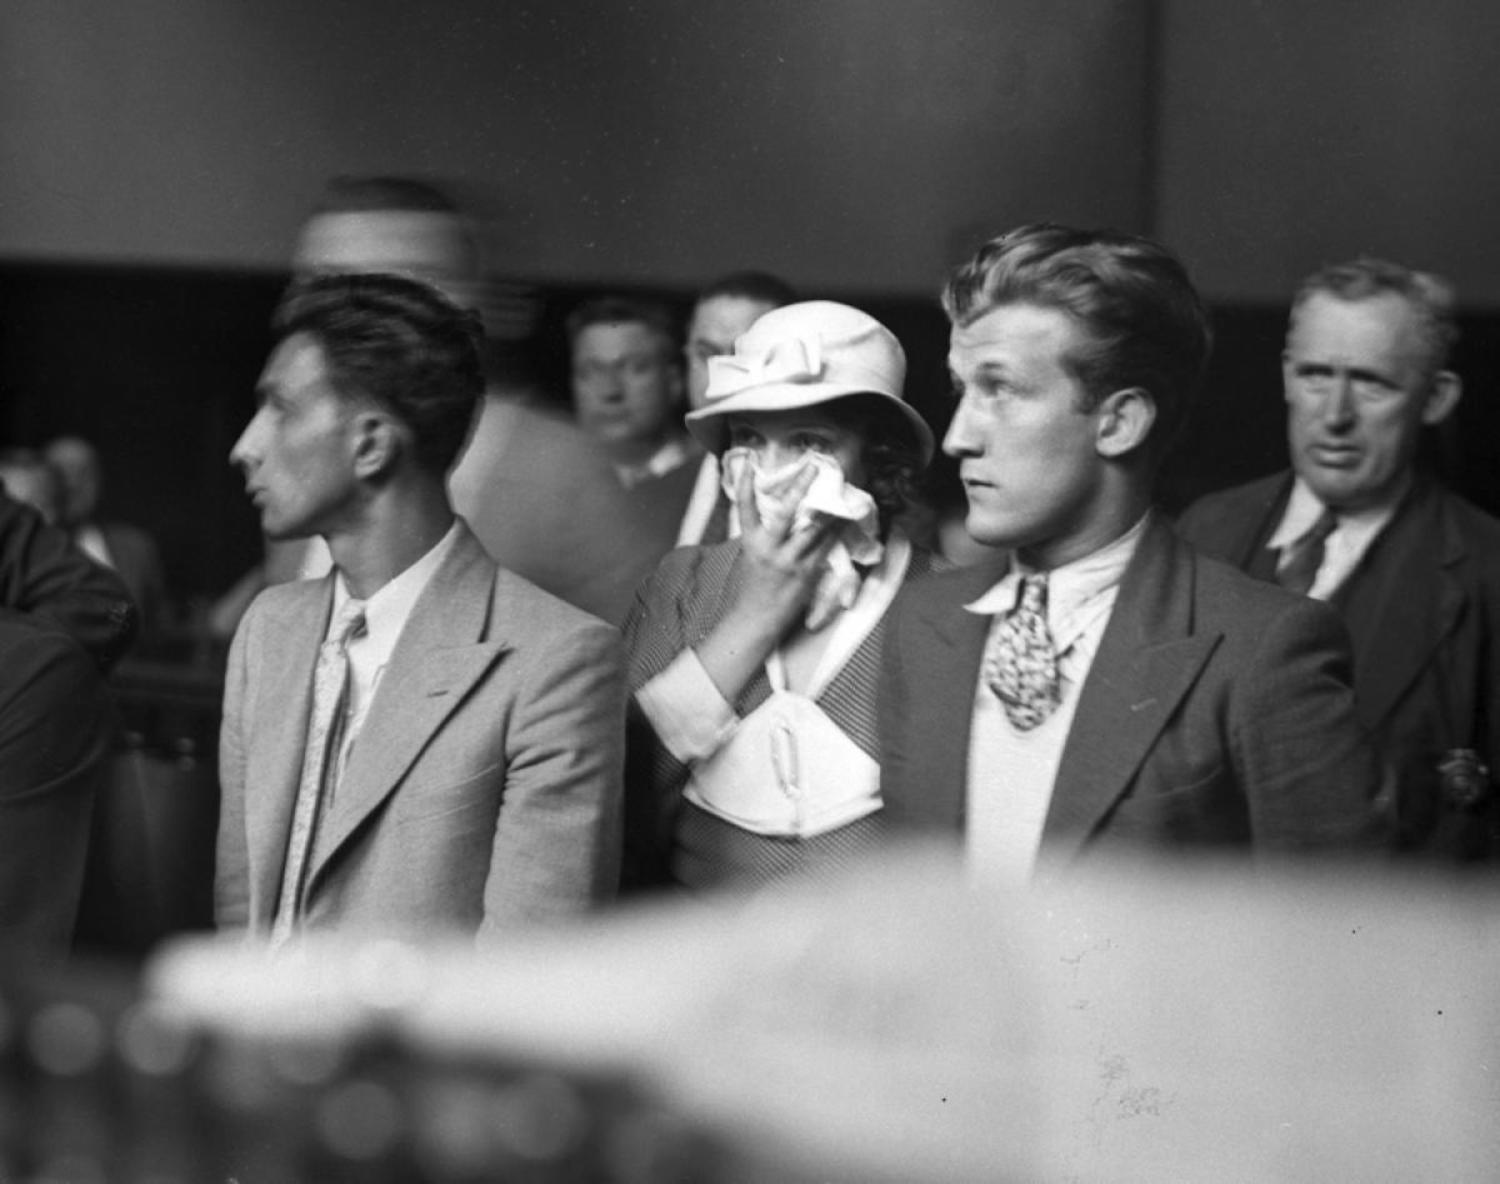 Mob Moll, 1933: Being married to a hitman will almost always get you into trouble, and no one knew that better than Lottie Coll, wife of Irish mobster Vincent 'Mad Dog' Coll. Here, Coll holds her scarf to her face as she is arraigned in court in 1933.